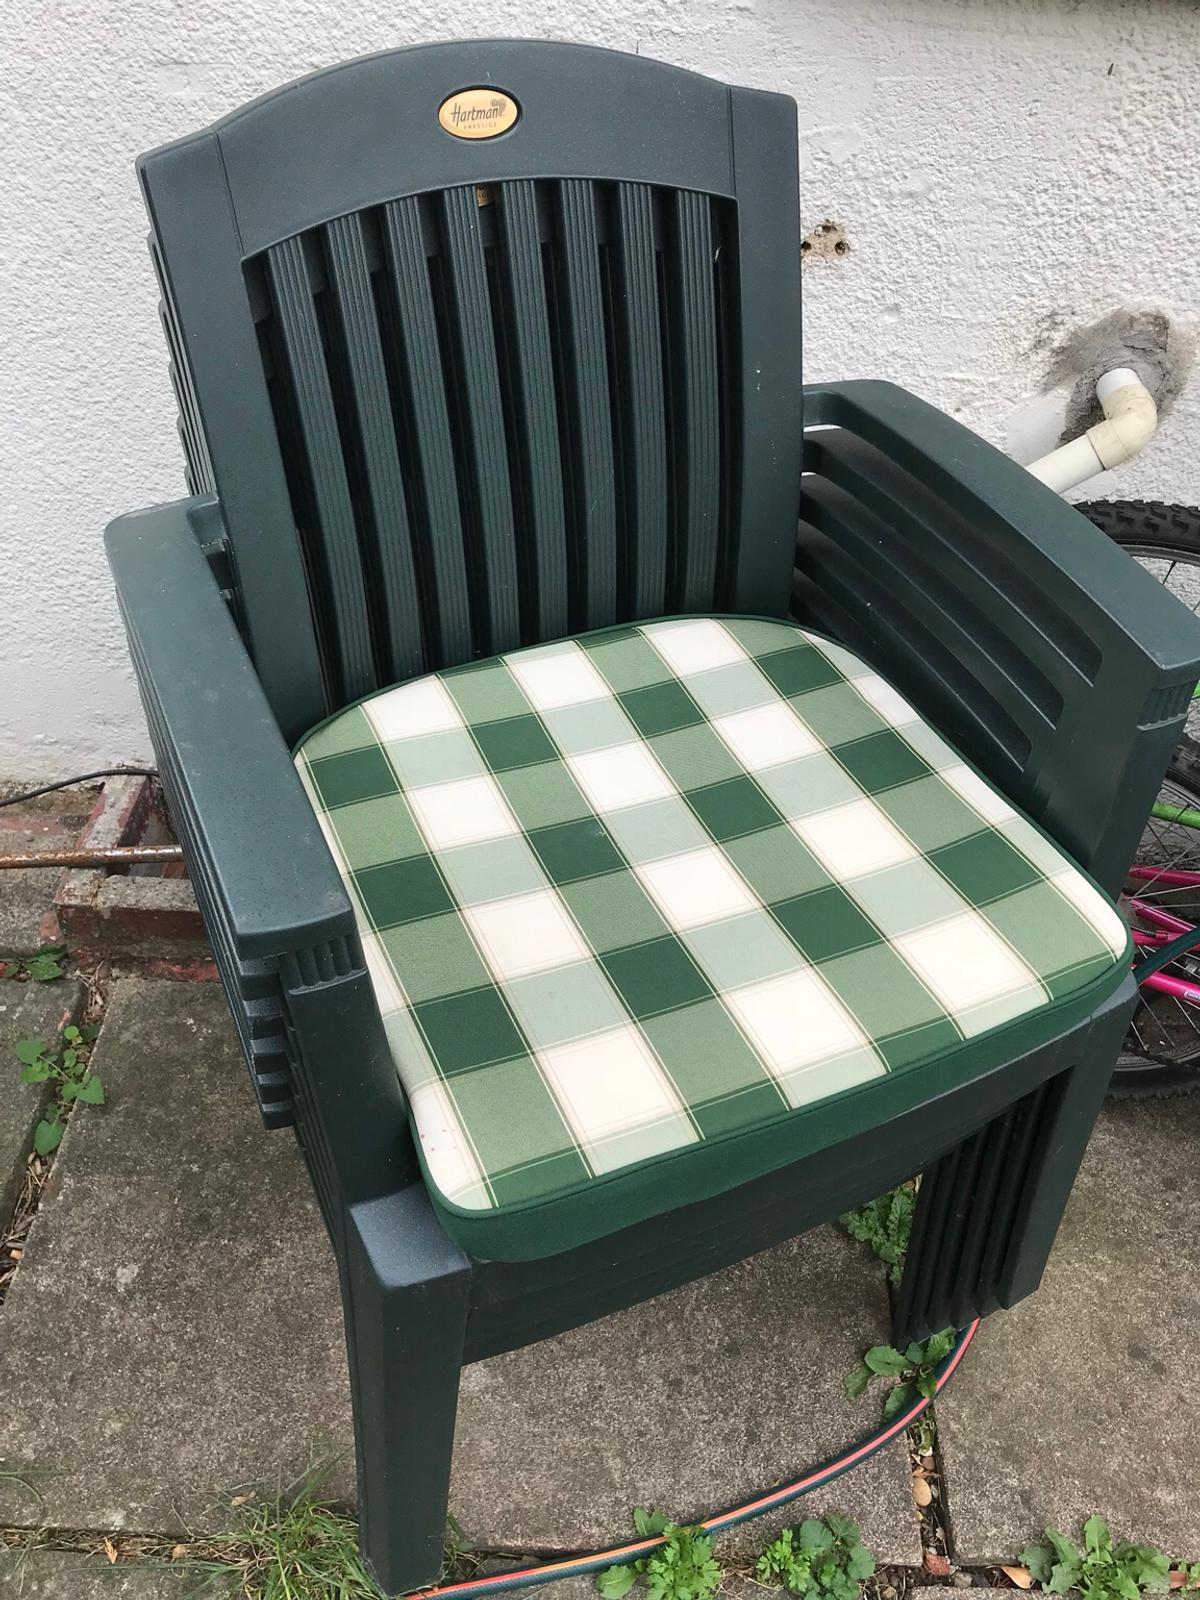 Verbazingwekkend 6x Hartman prestige garden chairs & cushion in AL10 Hatfield for VB-66